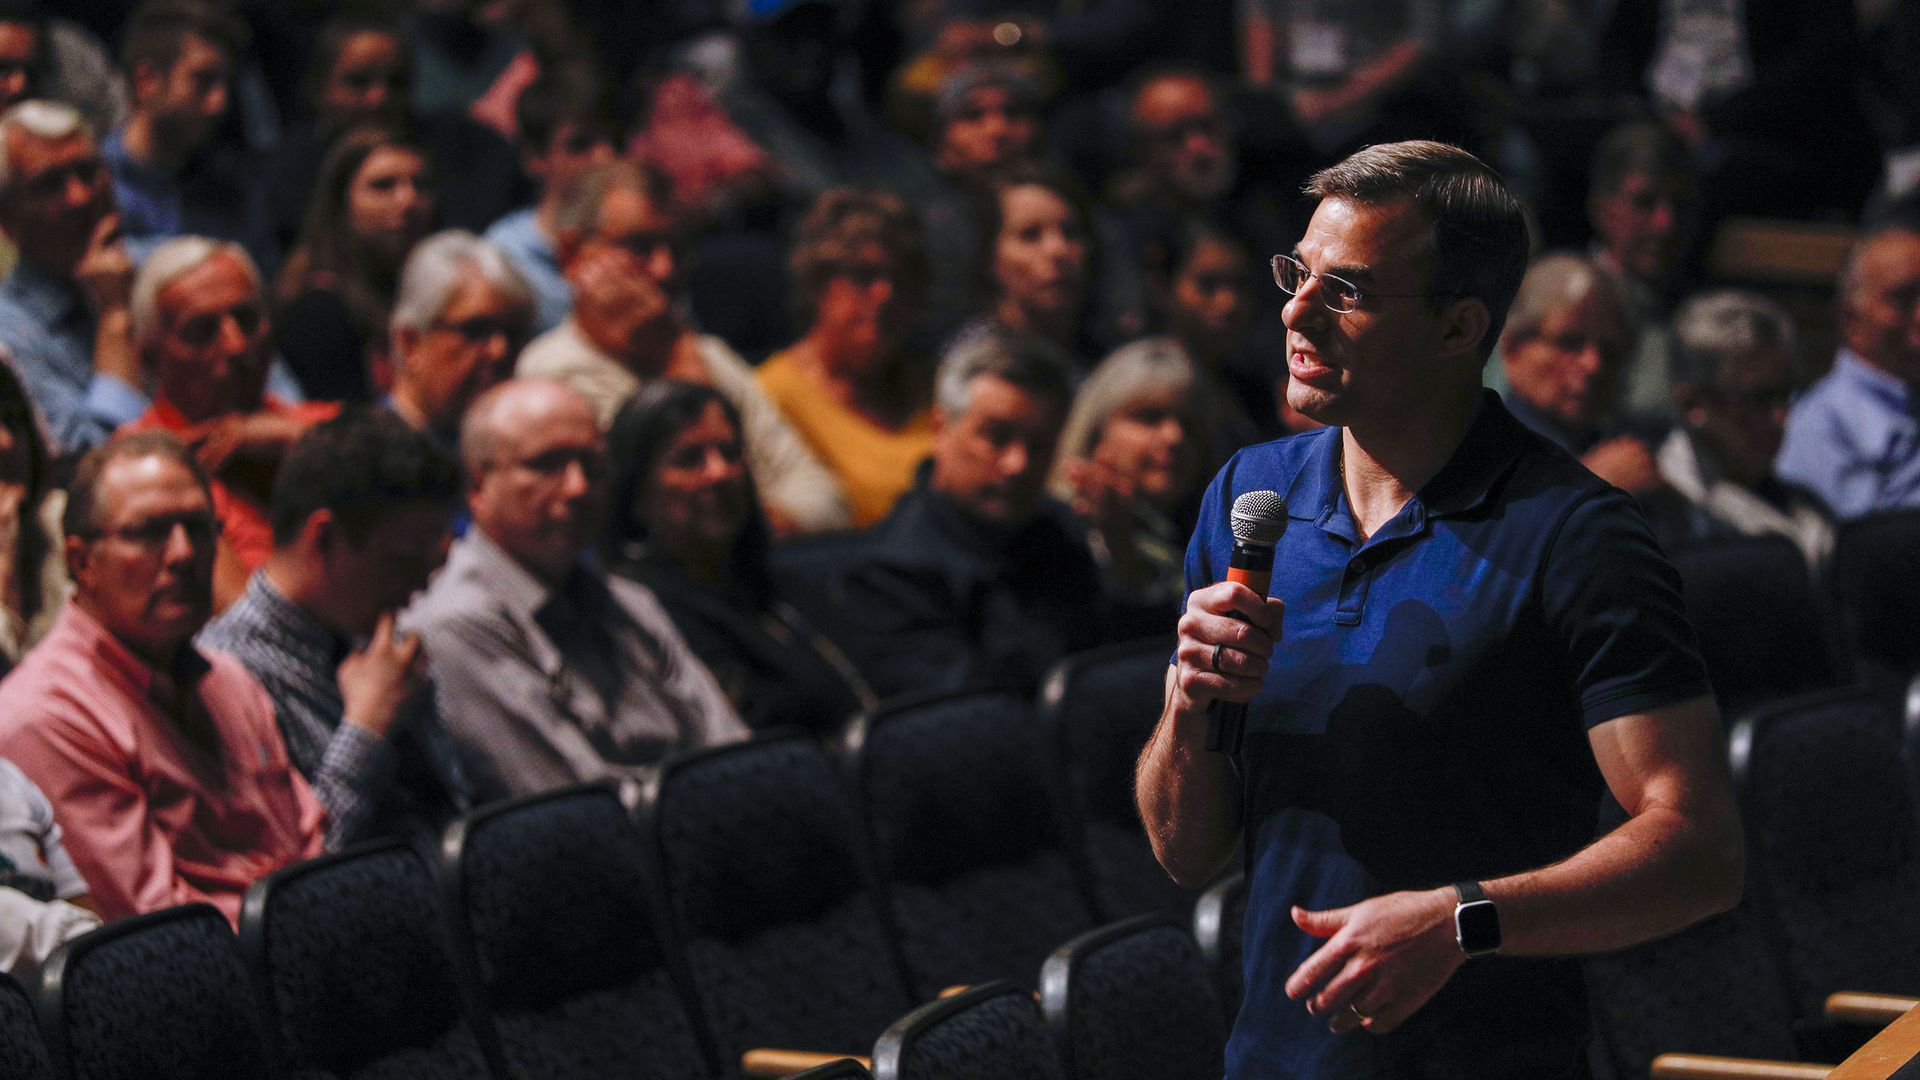 U.S. Rep. Justin Amash (R-MI) holds a Town Hall Meeting on May 28, 2019 in Grand Rapids, Michigan.